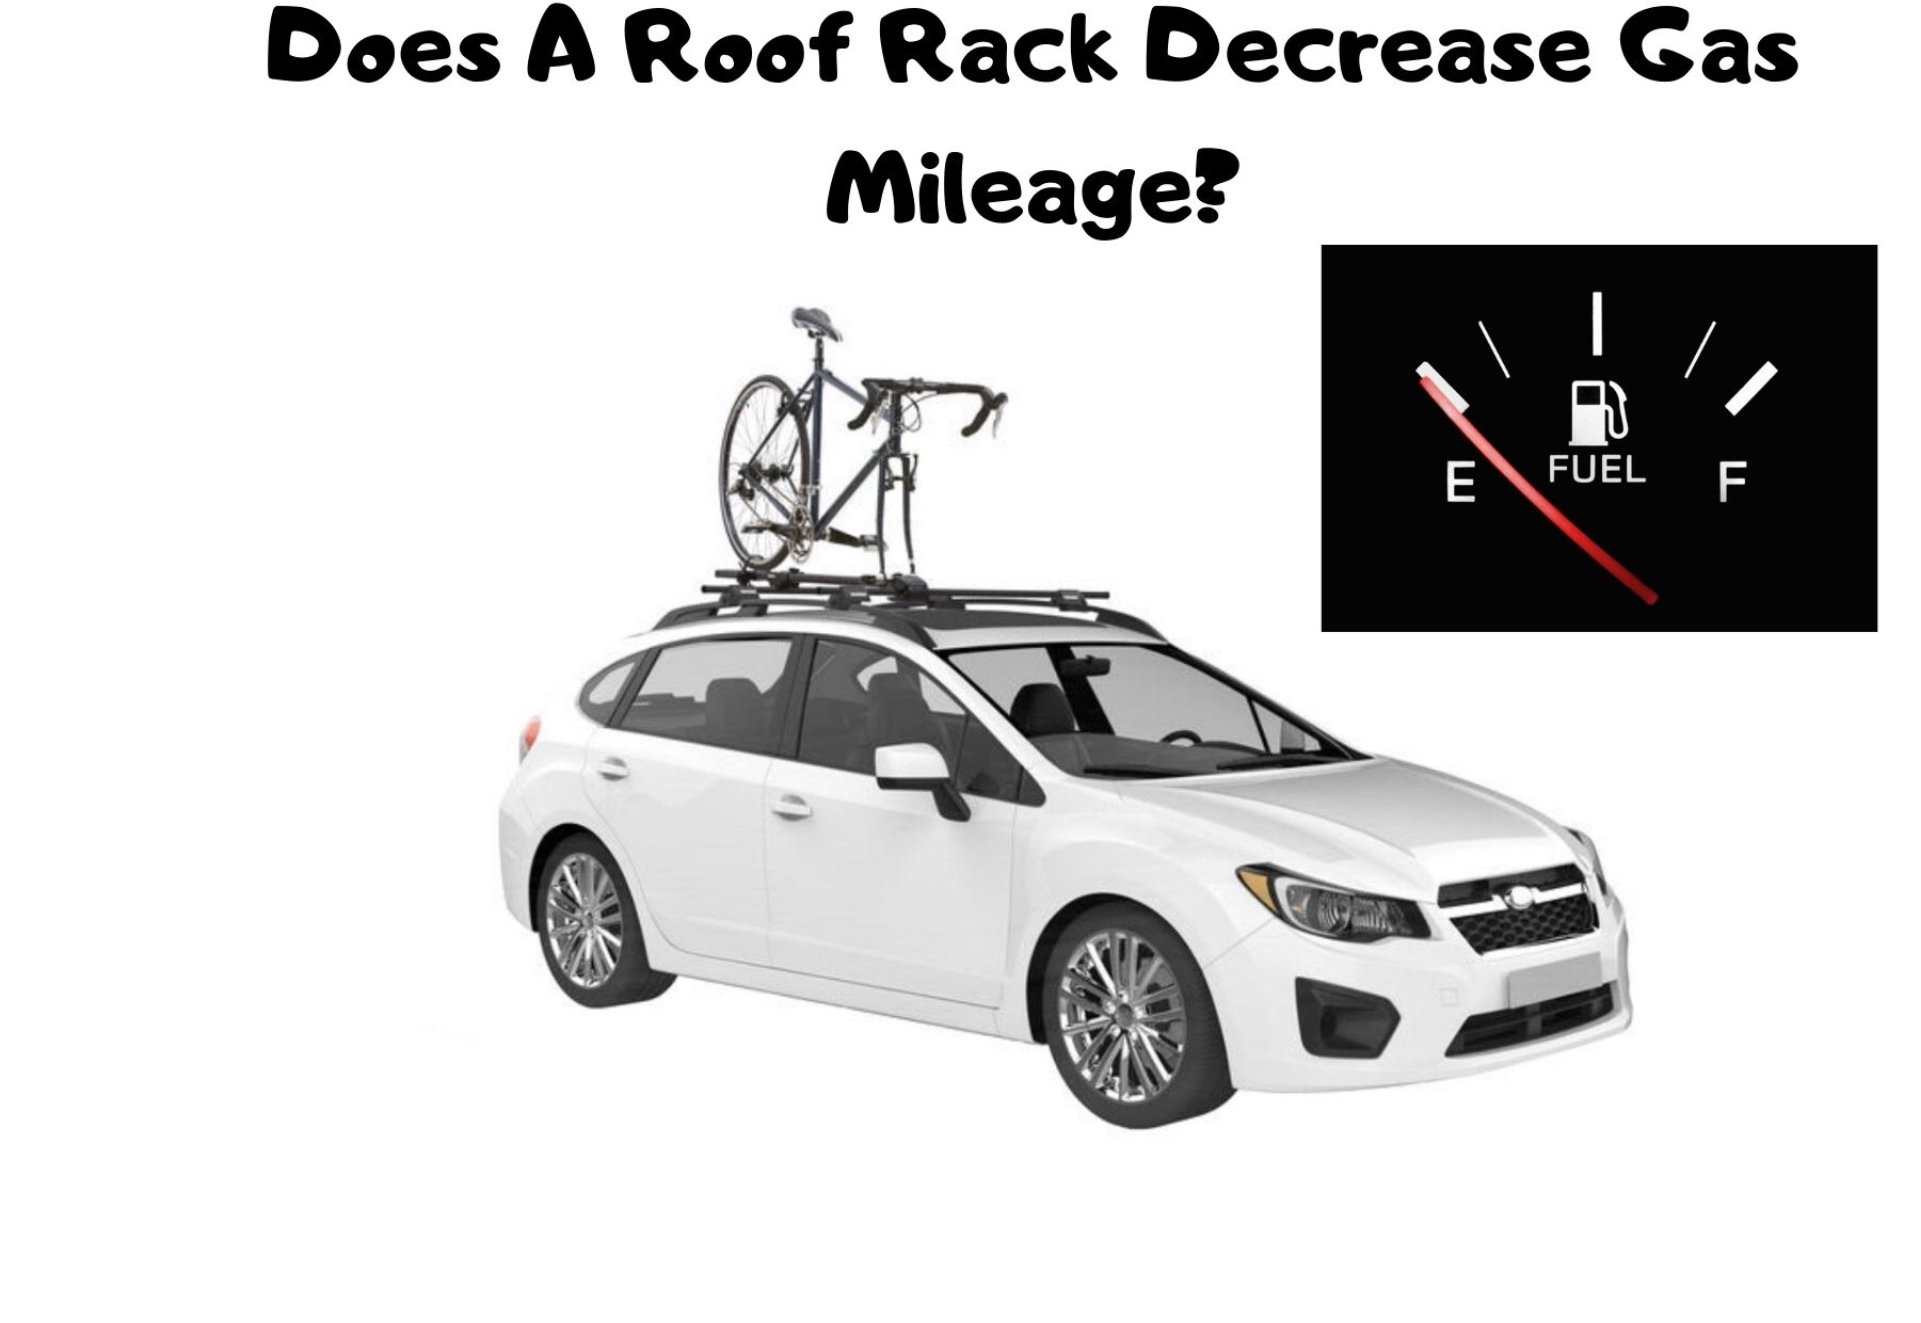 Does a roof rack affect gas mileage